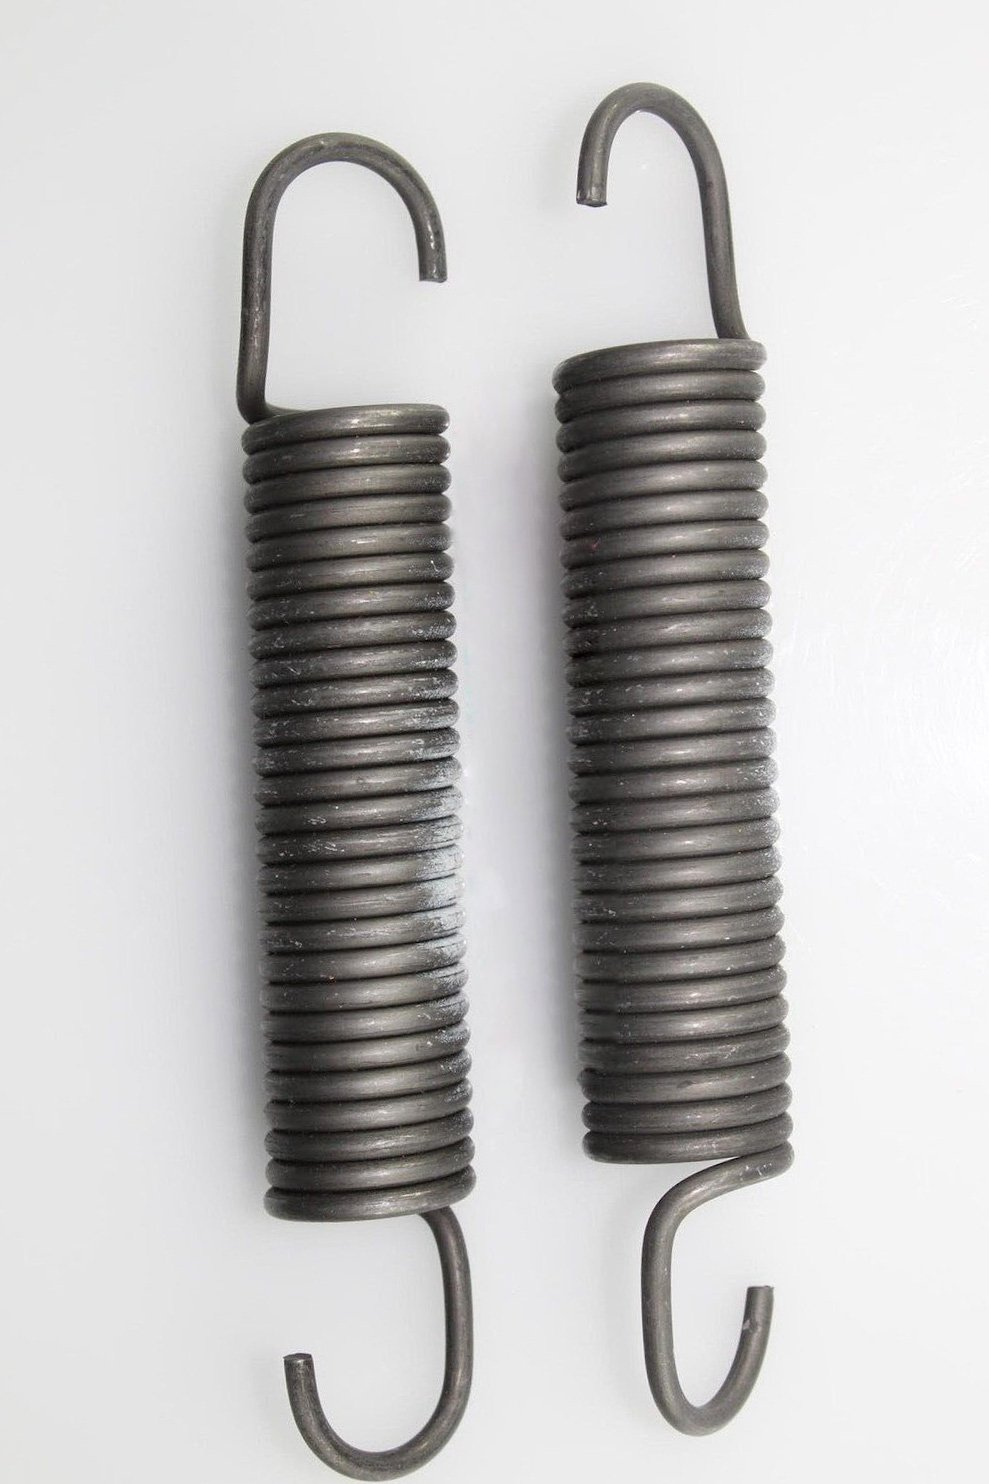 2 pcs Suspension Springs 8182814 for Whirlpool Washer 1200353 8181762 8182796 AH1485946 EA1485946 PS1485946 W10127411 W10135004 Genuine OEM